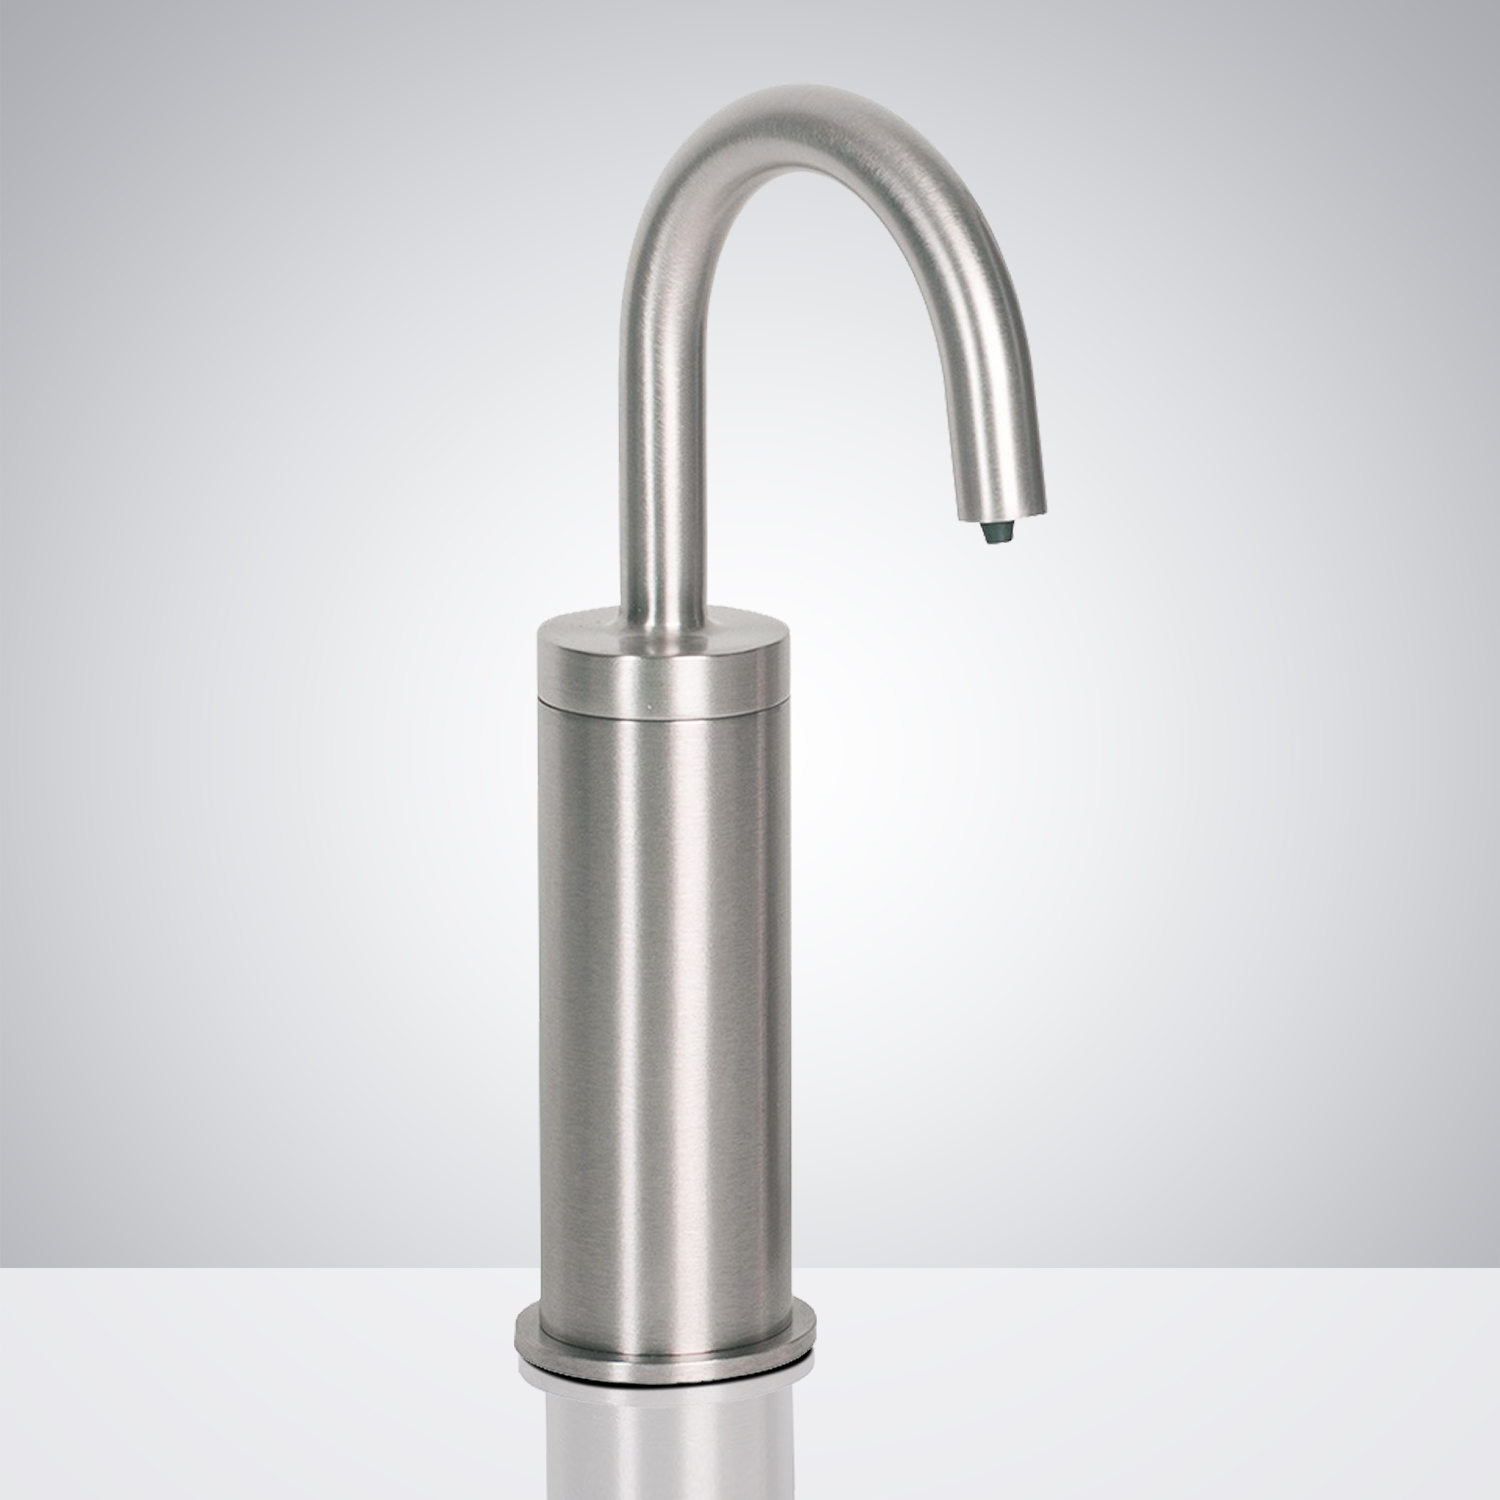 Fontana Atlanta Commercial Brushed Chrome Deck Mount Automatic Touchless Soap Dispenser